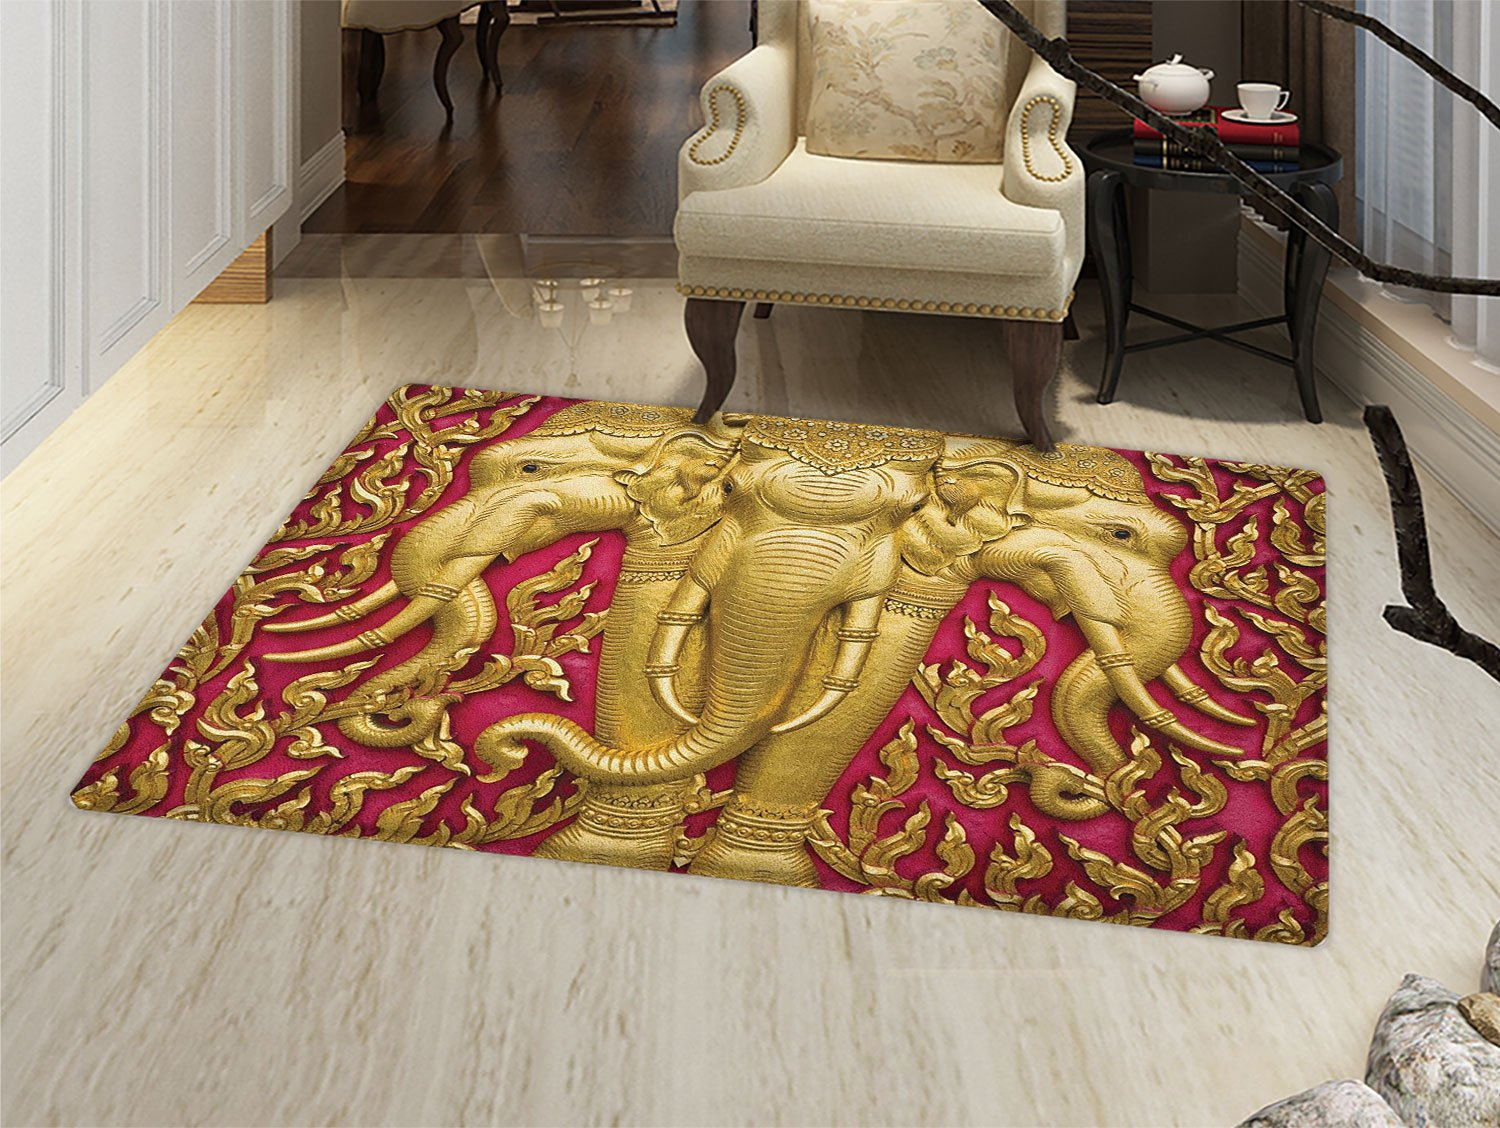 smallbeefly Elephant Door Mat indoors Elephant Carved Gold Paint on Door Thai Temple Spirituality Statue Classic Customize Bath Mat with Non Slip Backing Fuchsia Mustard by smallbeefly